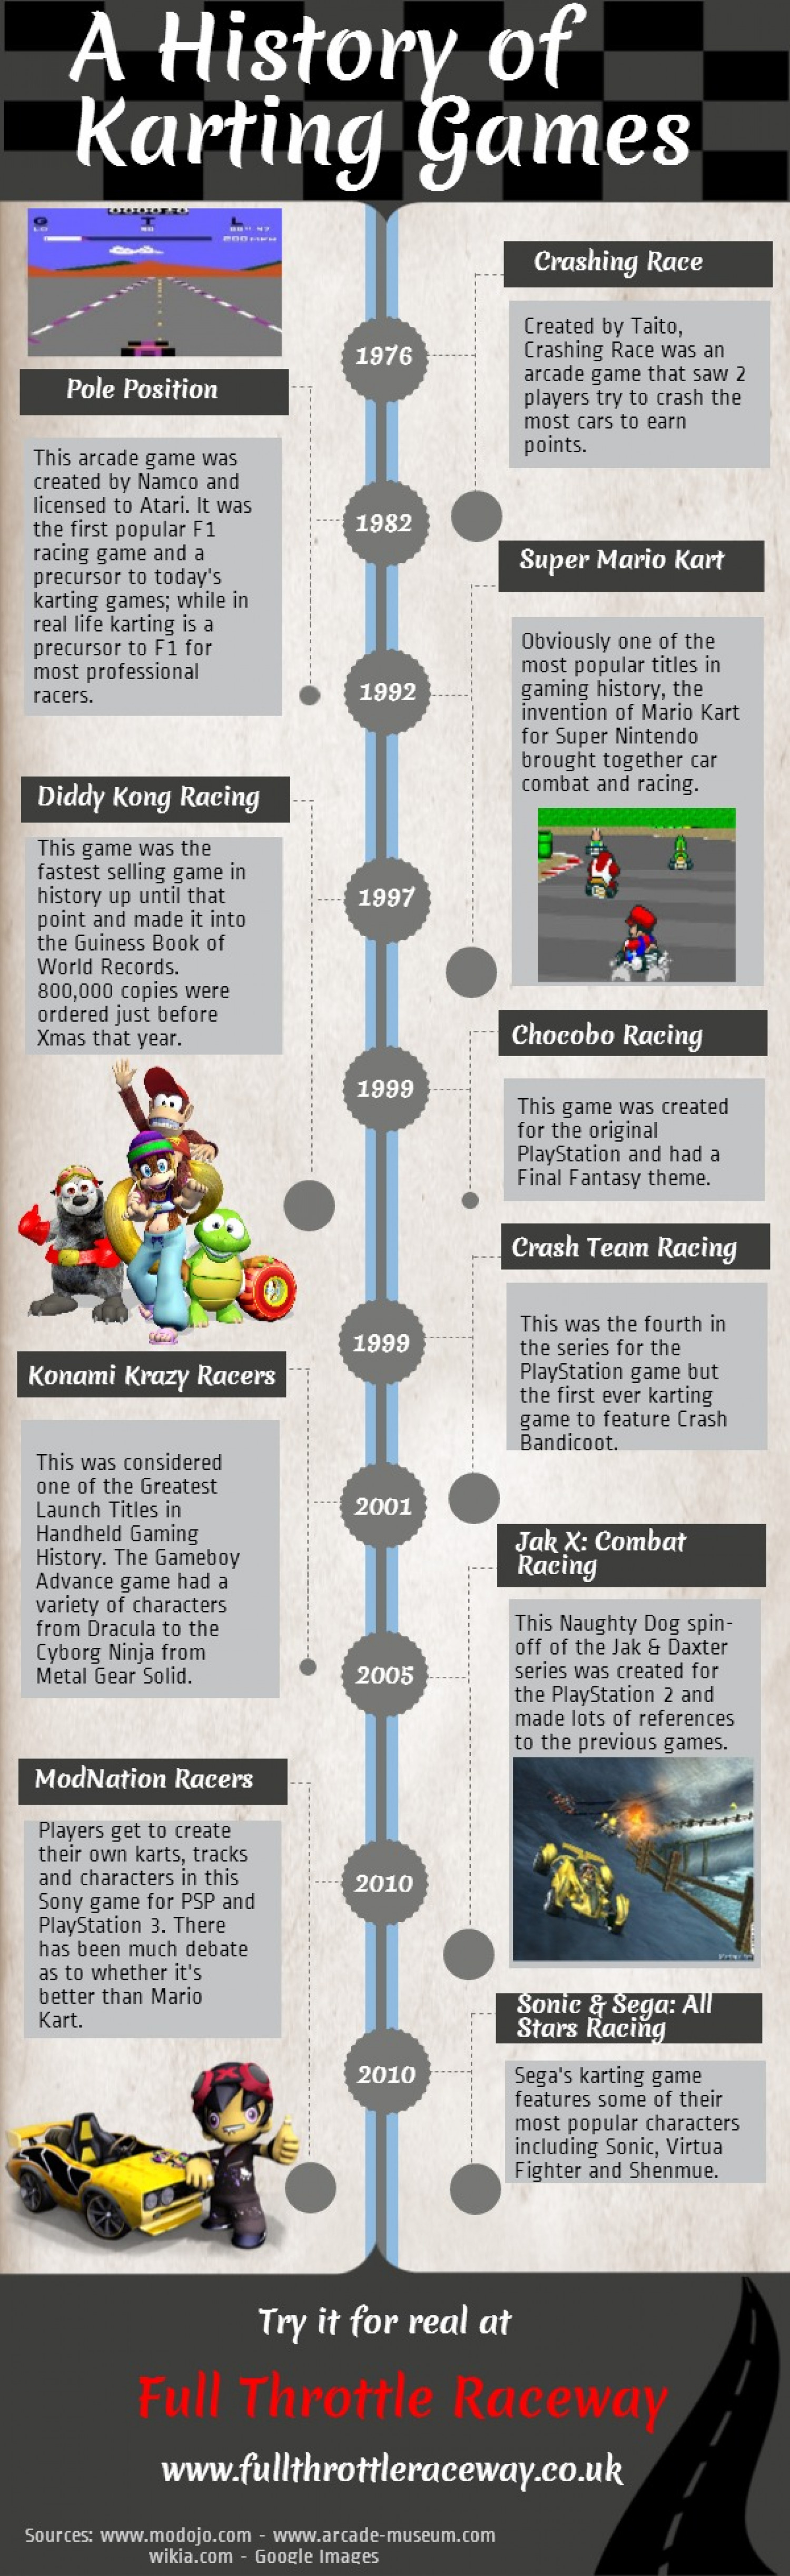 A History of Karting Games Infographic